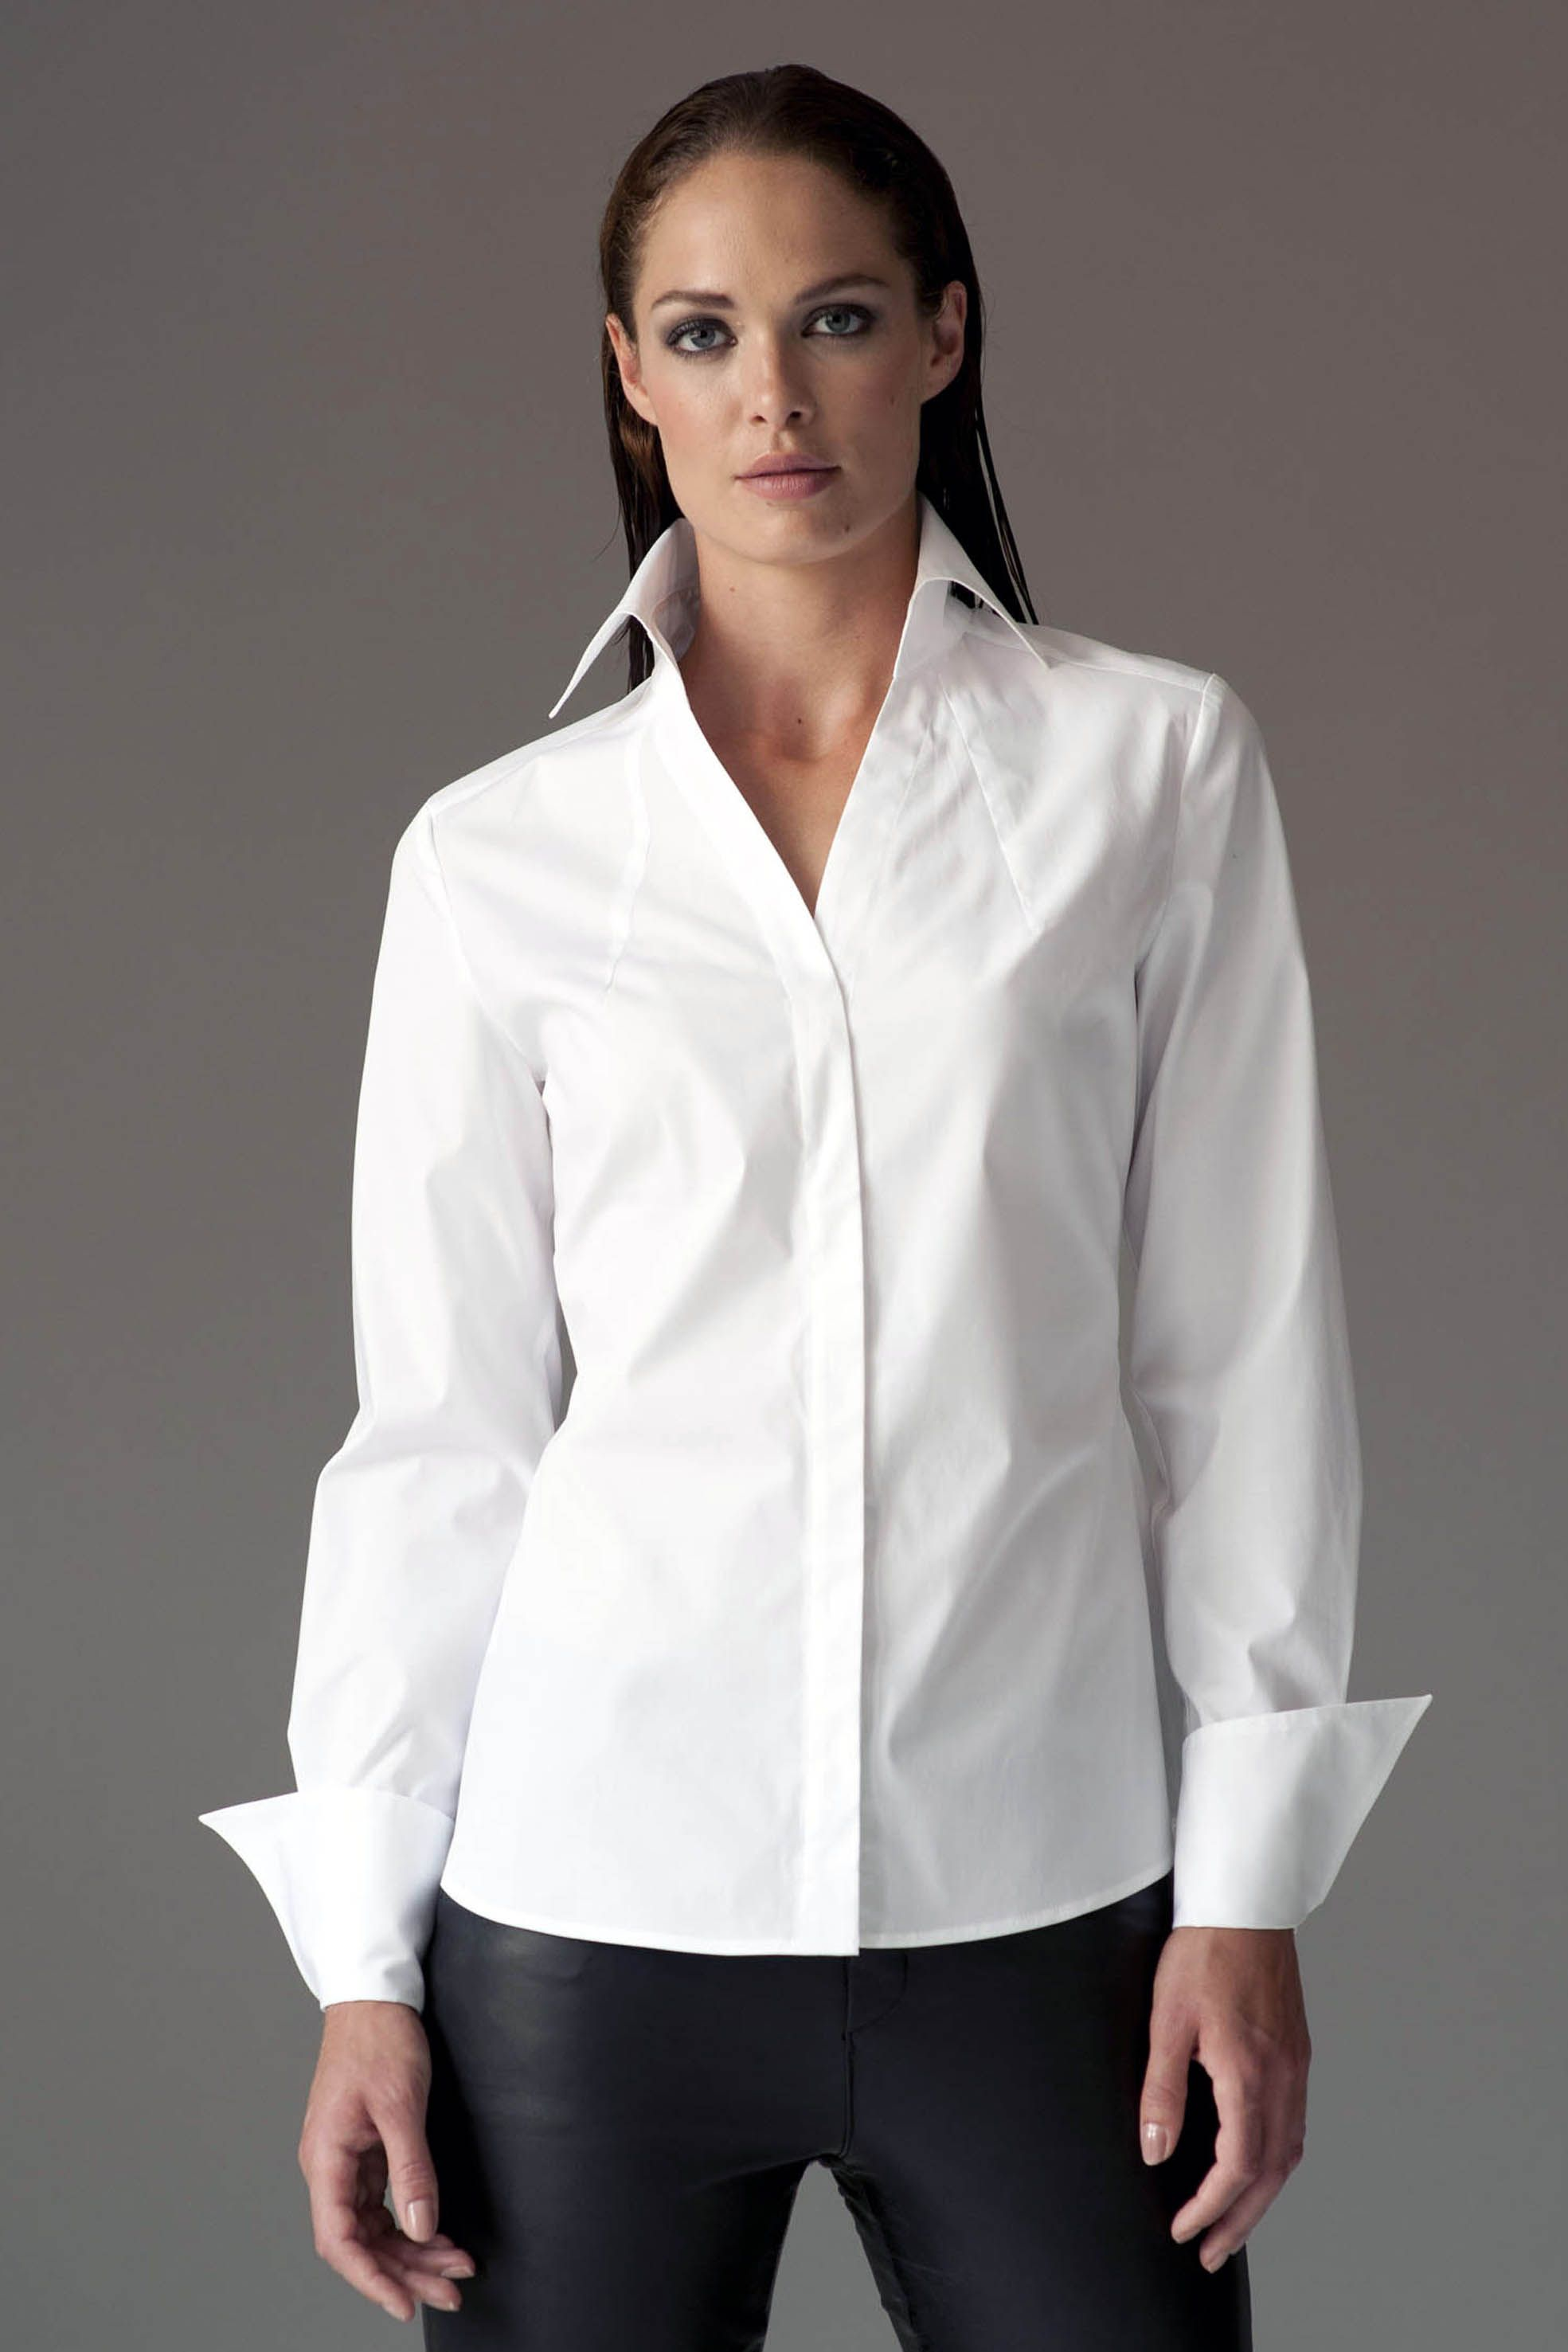 White shirt | Big Collars | Pinterest | White shirts and Classic white